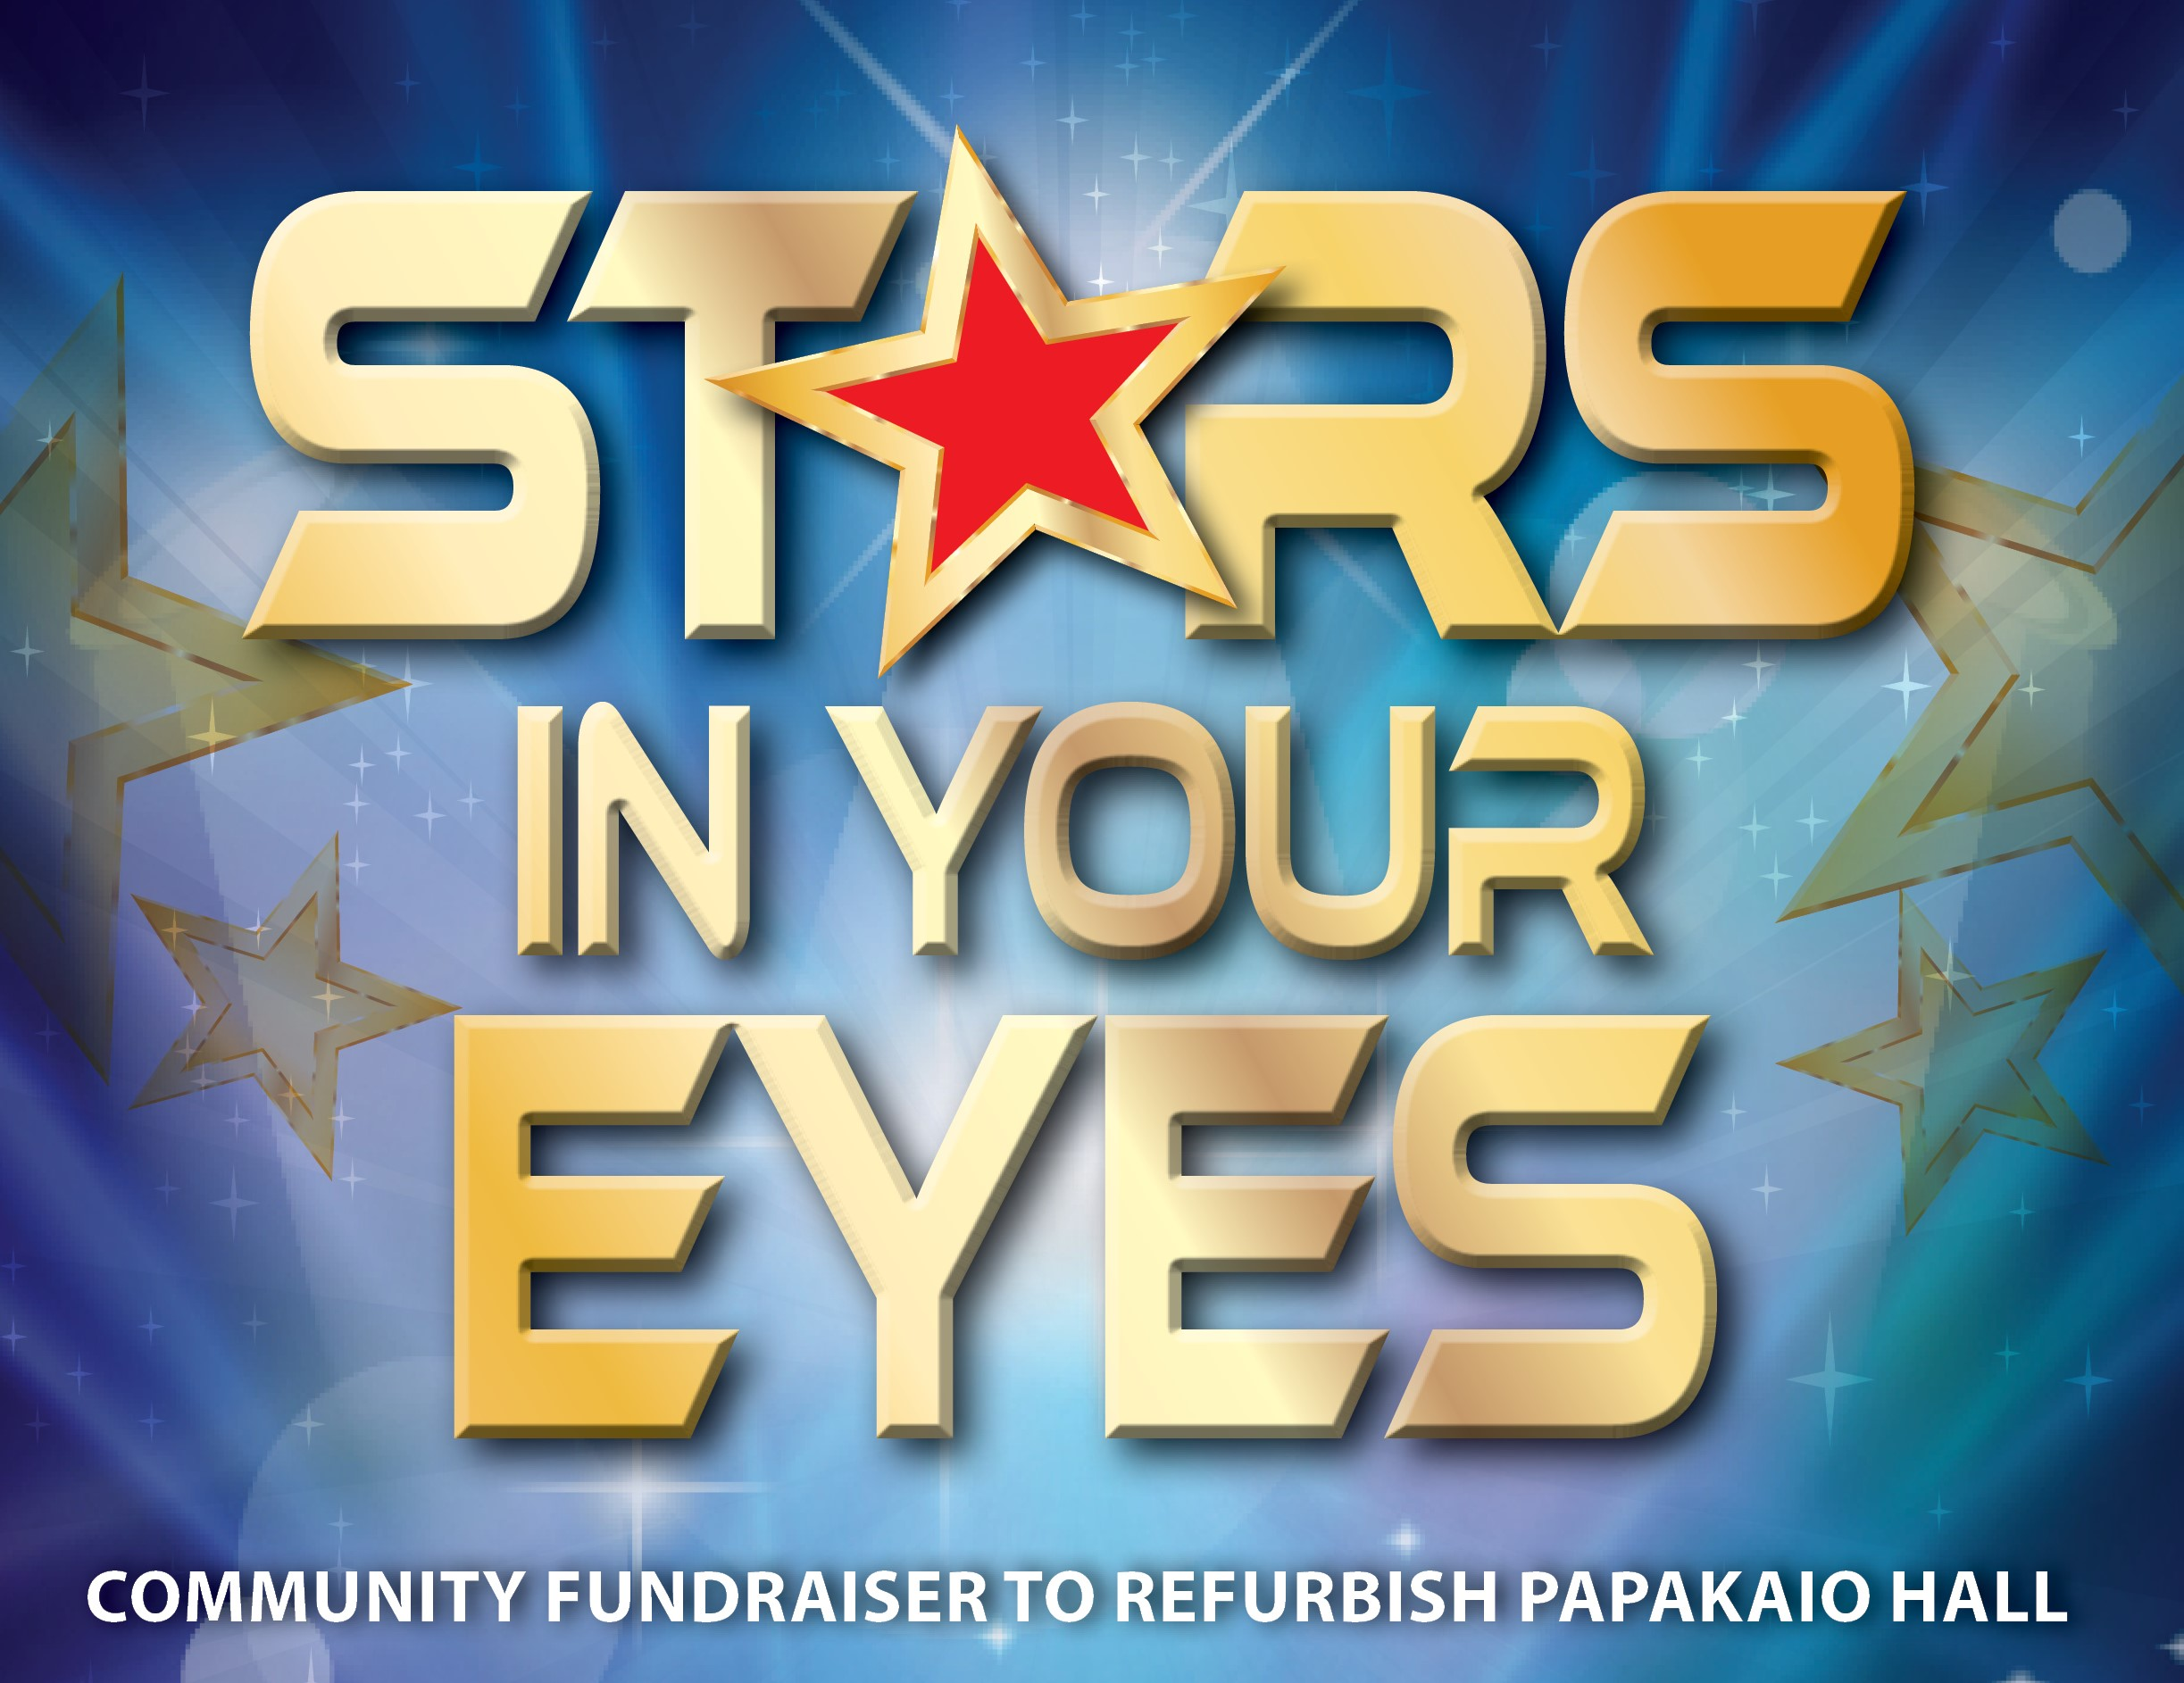 Papakaio Stars in your Eyes - Poster (002).jpg